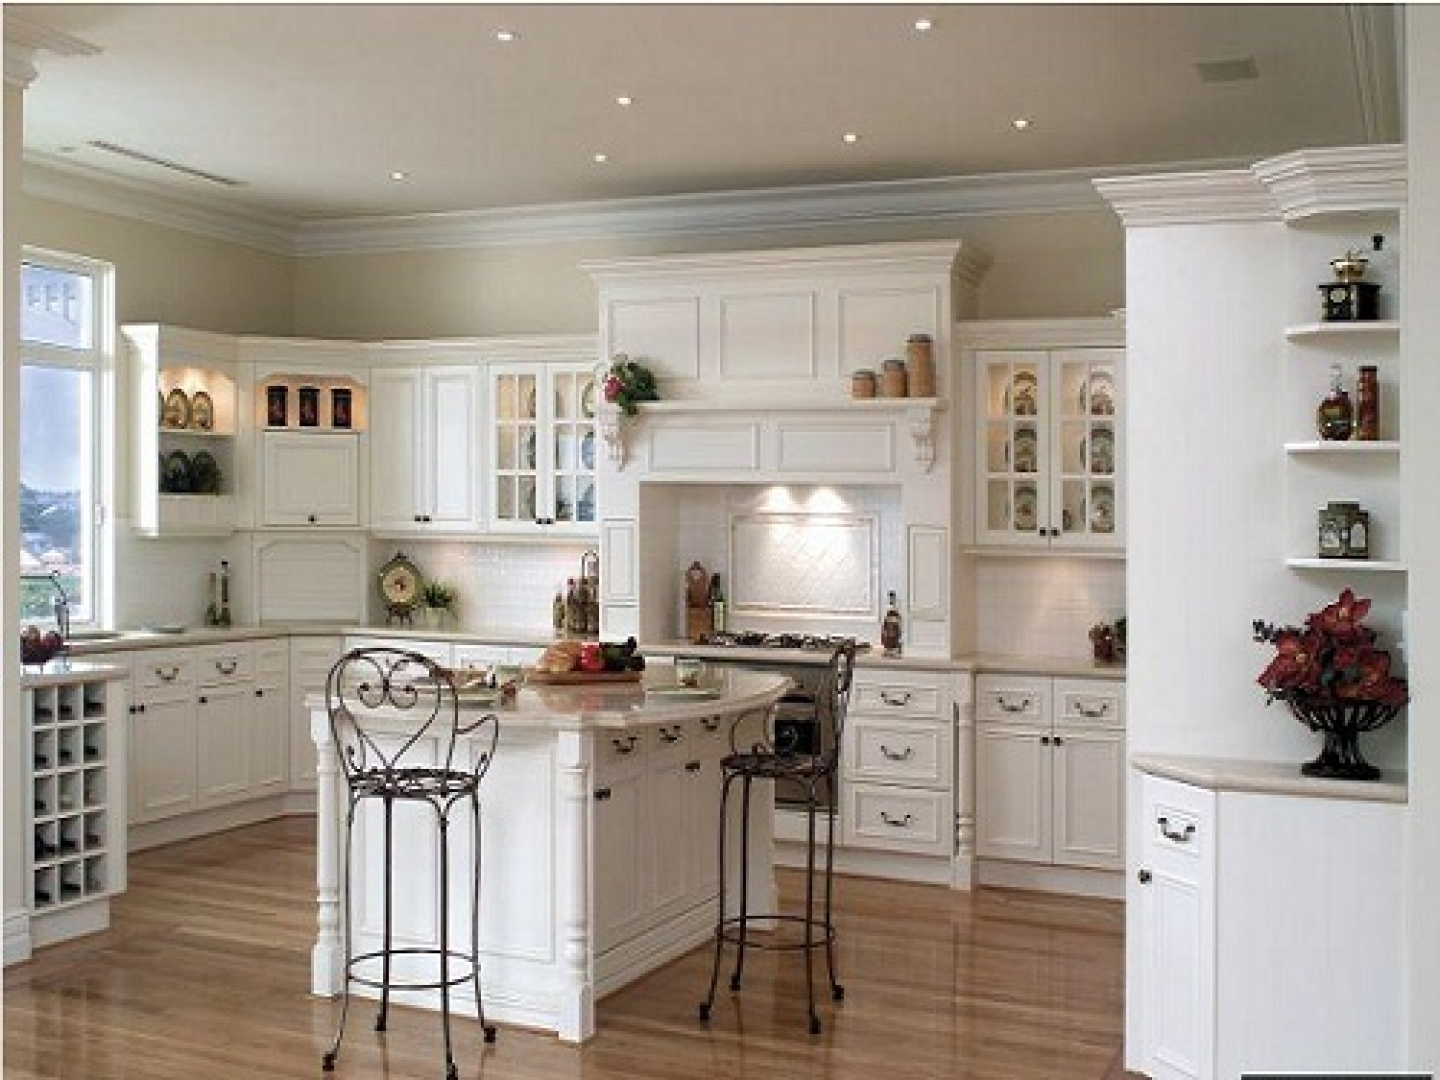 kitchen design ideas white cabinets kitchens with white cabinets kitchen design ideas white cabinets photo 1